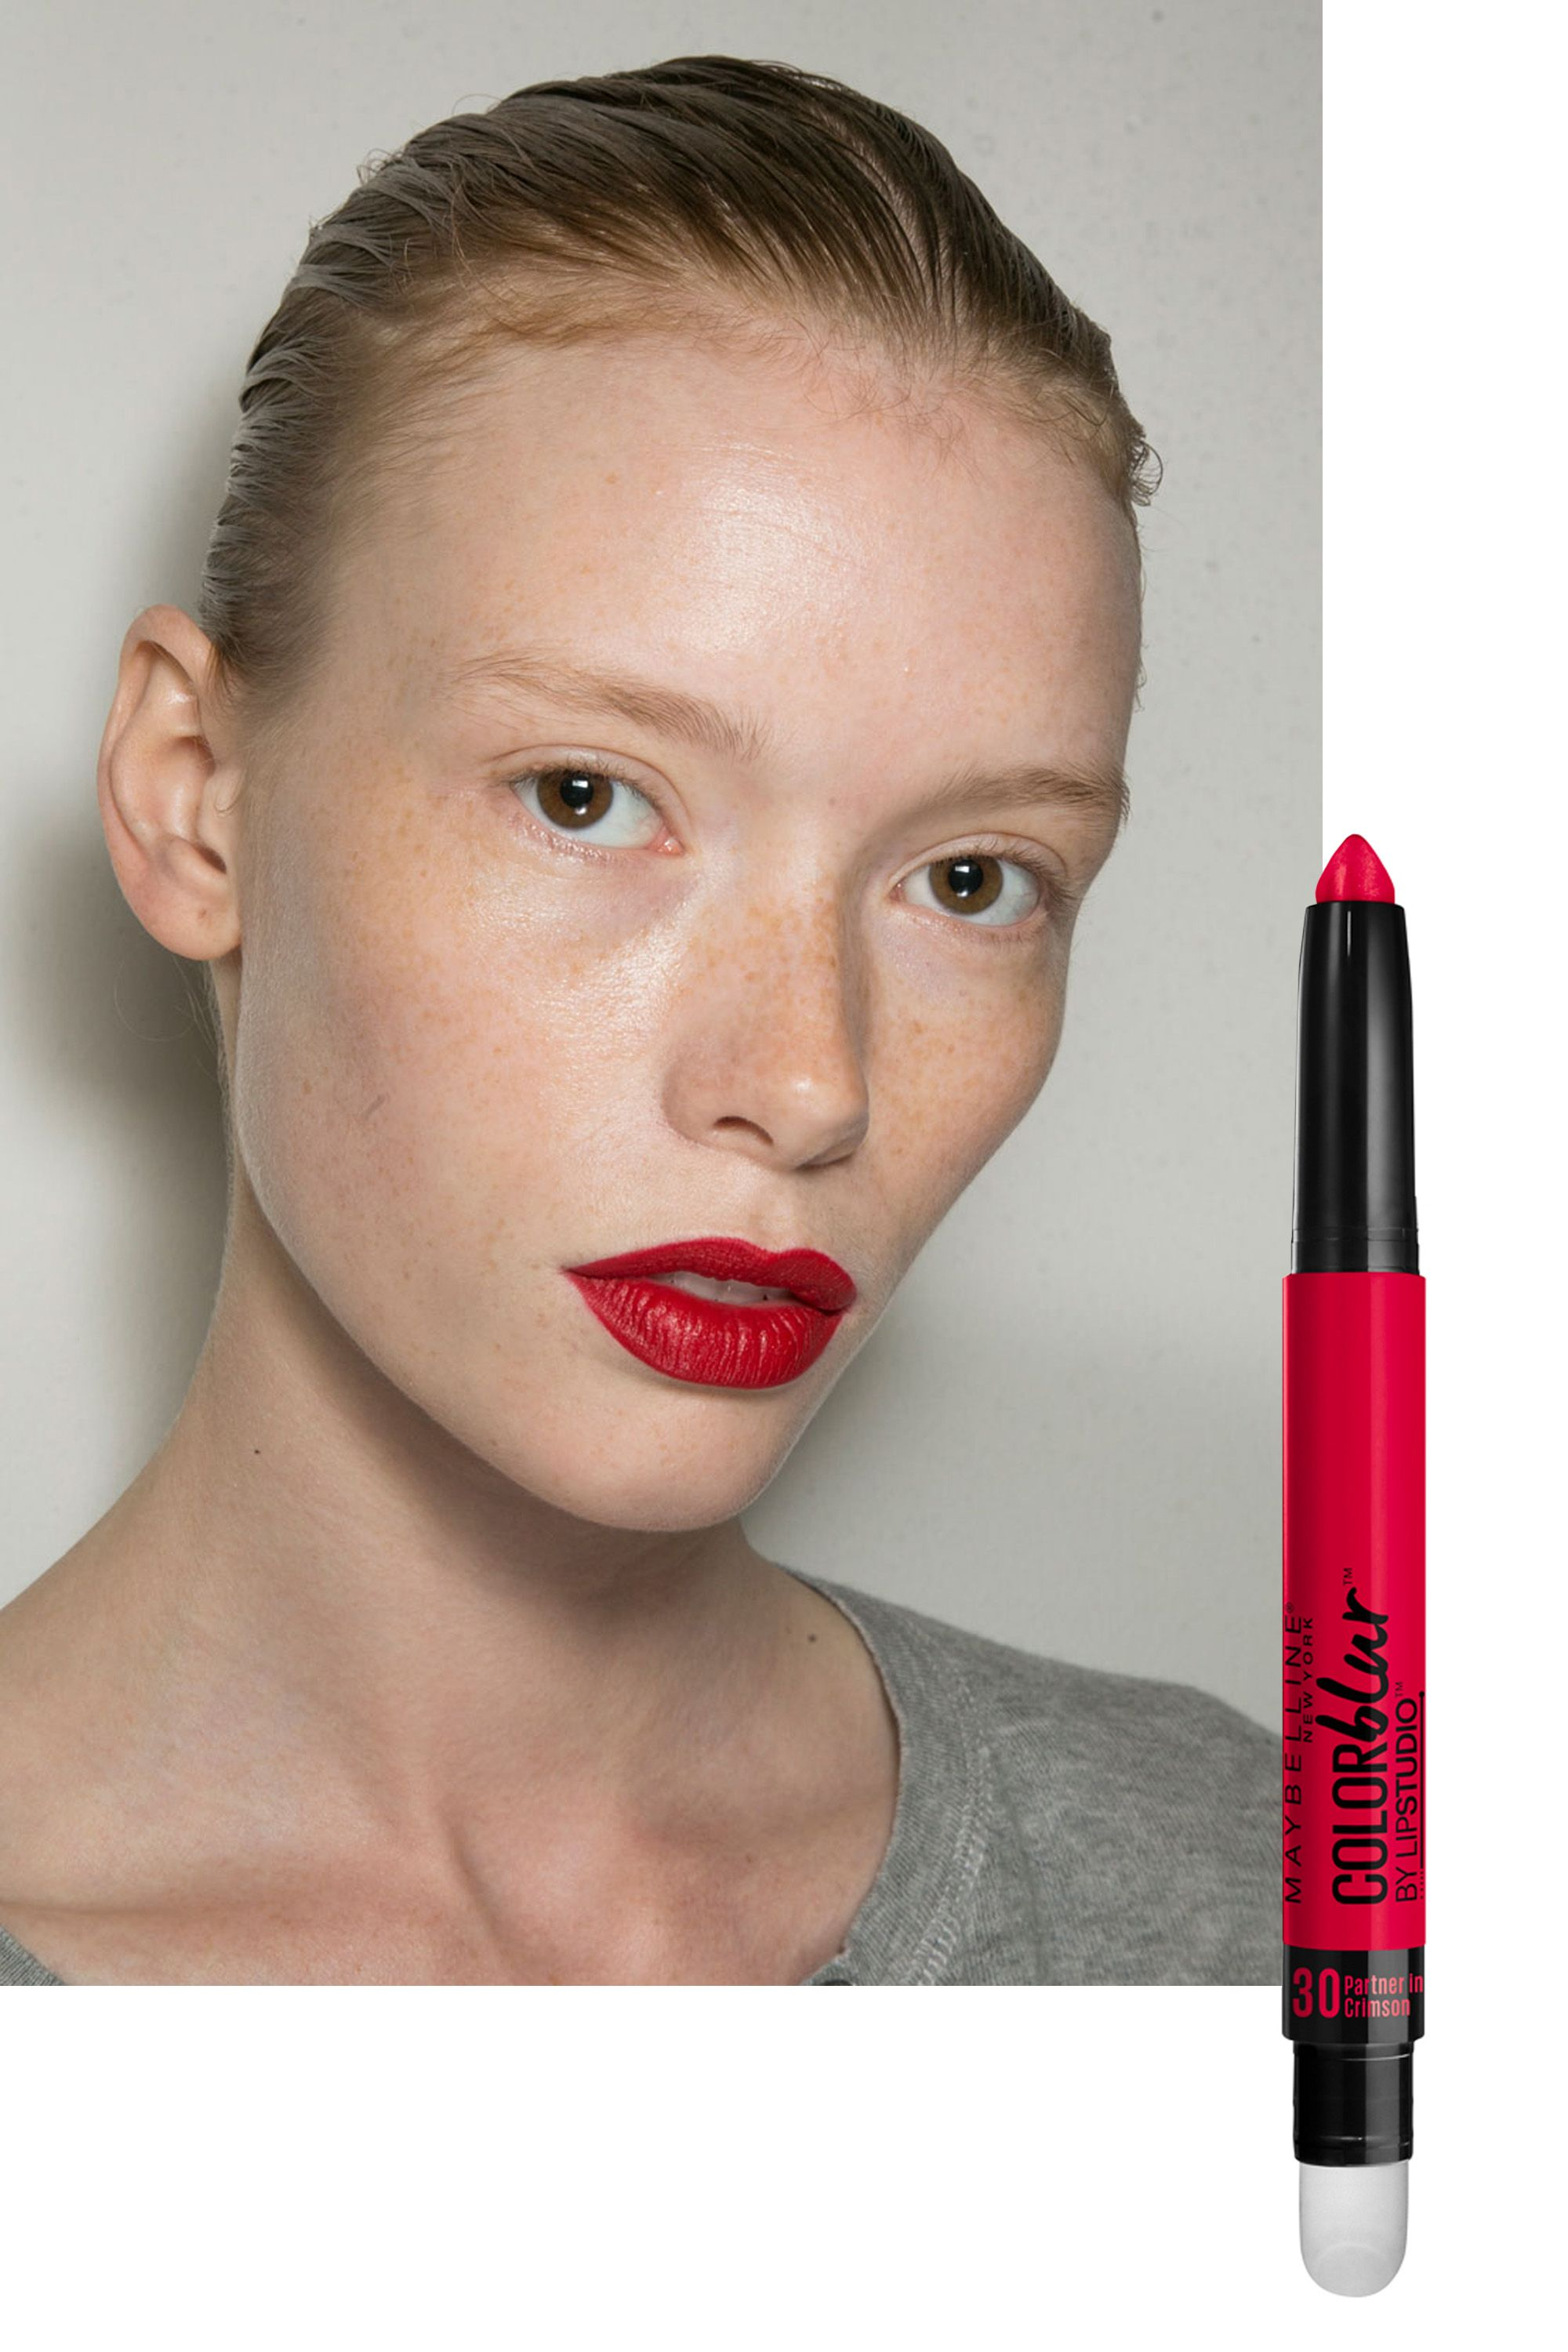 "<p>Makeup artist Yadim topped two shades of liquid lipstick with loose pigment to lend the classic crimson mouth a modern ""velvet"" finish.</p><p><em>For a similar look, try dusting a cherry-colored blush over <a href=""http://www.amazon.com/Maybelline-New-York-Studio-Color/dp/B00YJJXC7G/ref=redir_mobile_desktop?ie=UTF8&dpID=21wt4Vu7QqL&dpPl=1&keywords=maybelline%20color%20blur&pi=SY200_QL40&qid=1443530360&ref=plSrch&ref_=mp_s_a_1_1&sr=8-1"" target=""_blank"">Maybelline New York Lip Studio Color Blur Matte Pencil in Partner in Crimson</a> ($9).</em></p>"